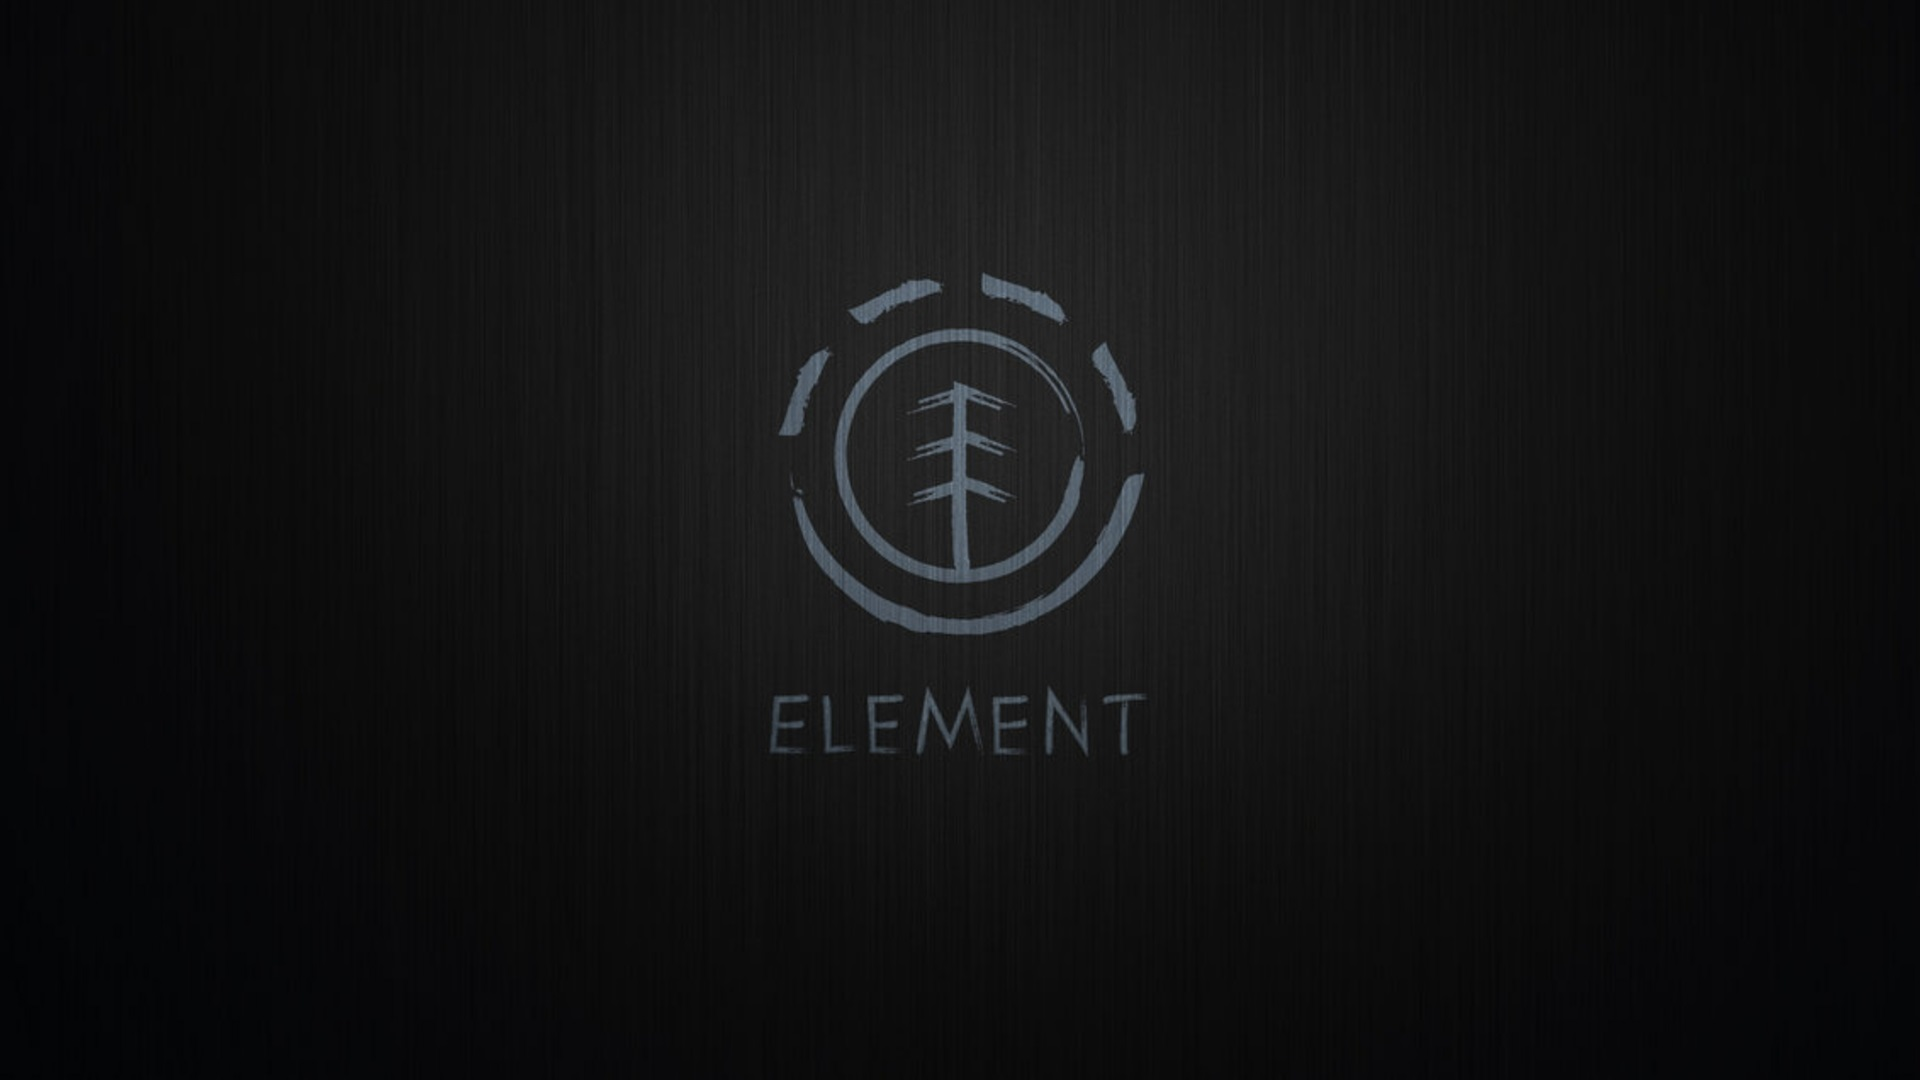 Element-Skateboards-1920x1080-wallpaper-wpc5804555